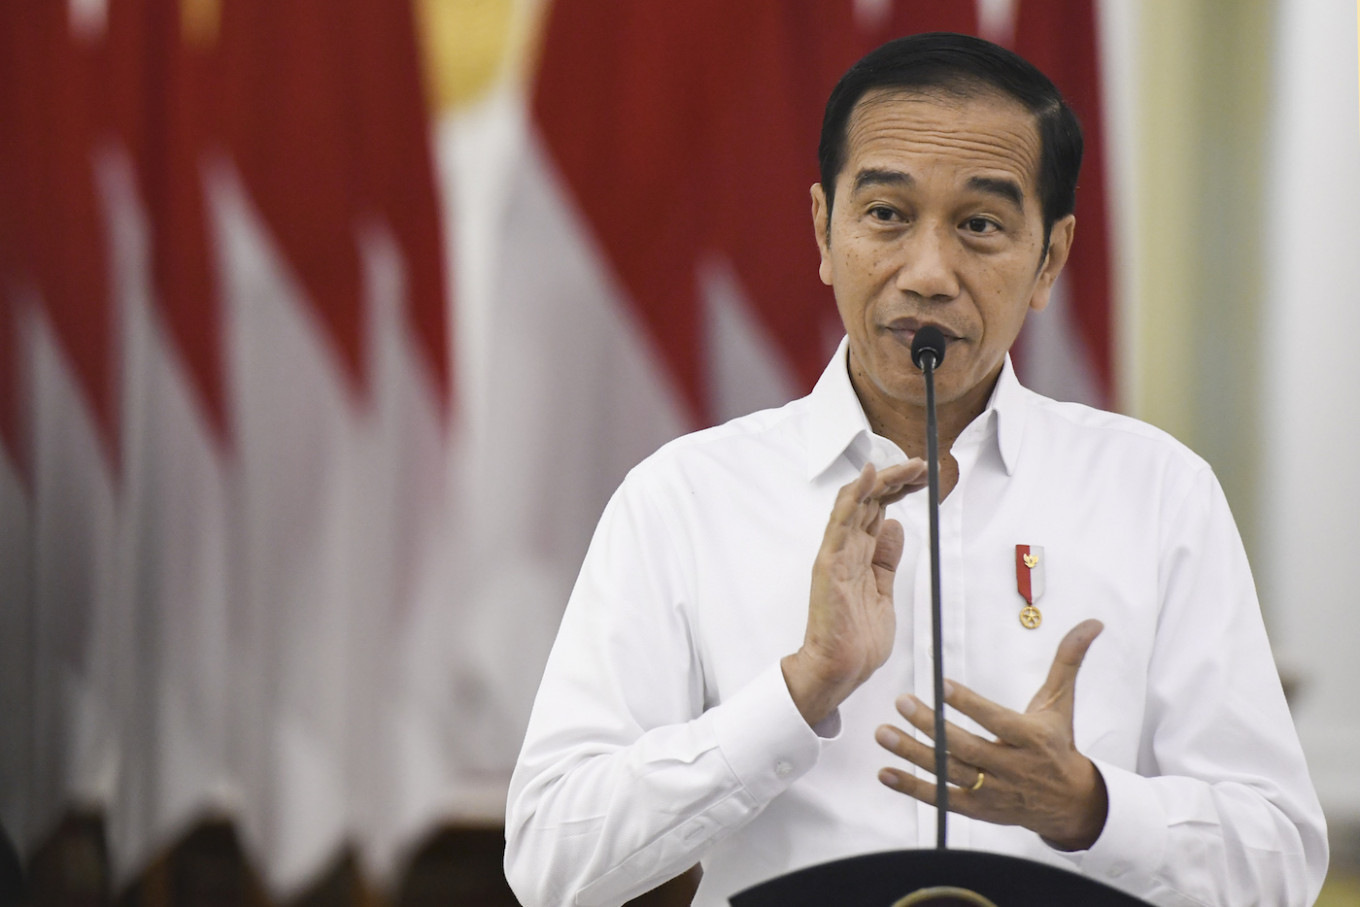 Indonesia starts rapid tests, imports medicines to 'cure' COVID-19, Jokowi says